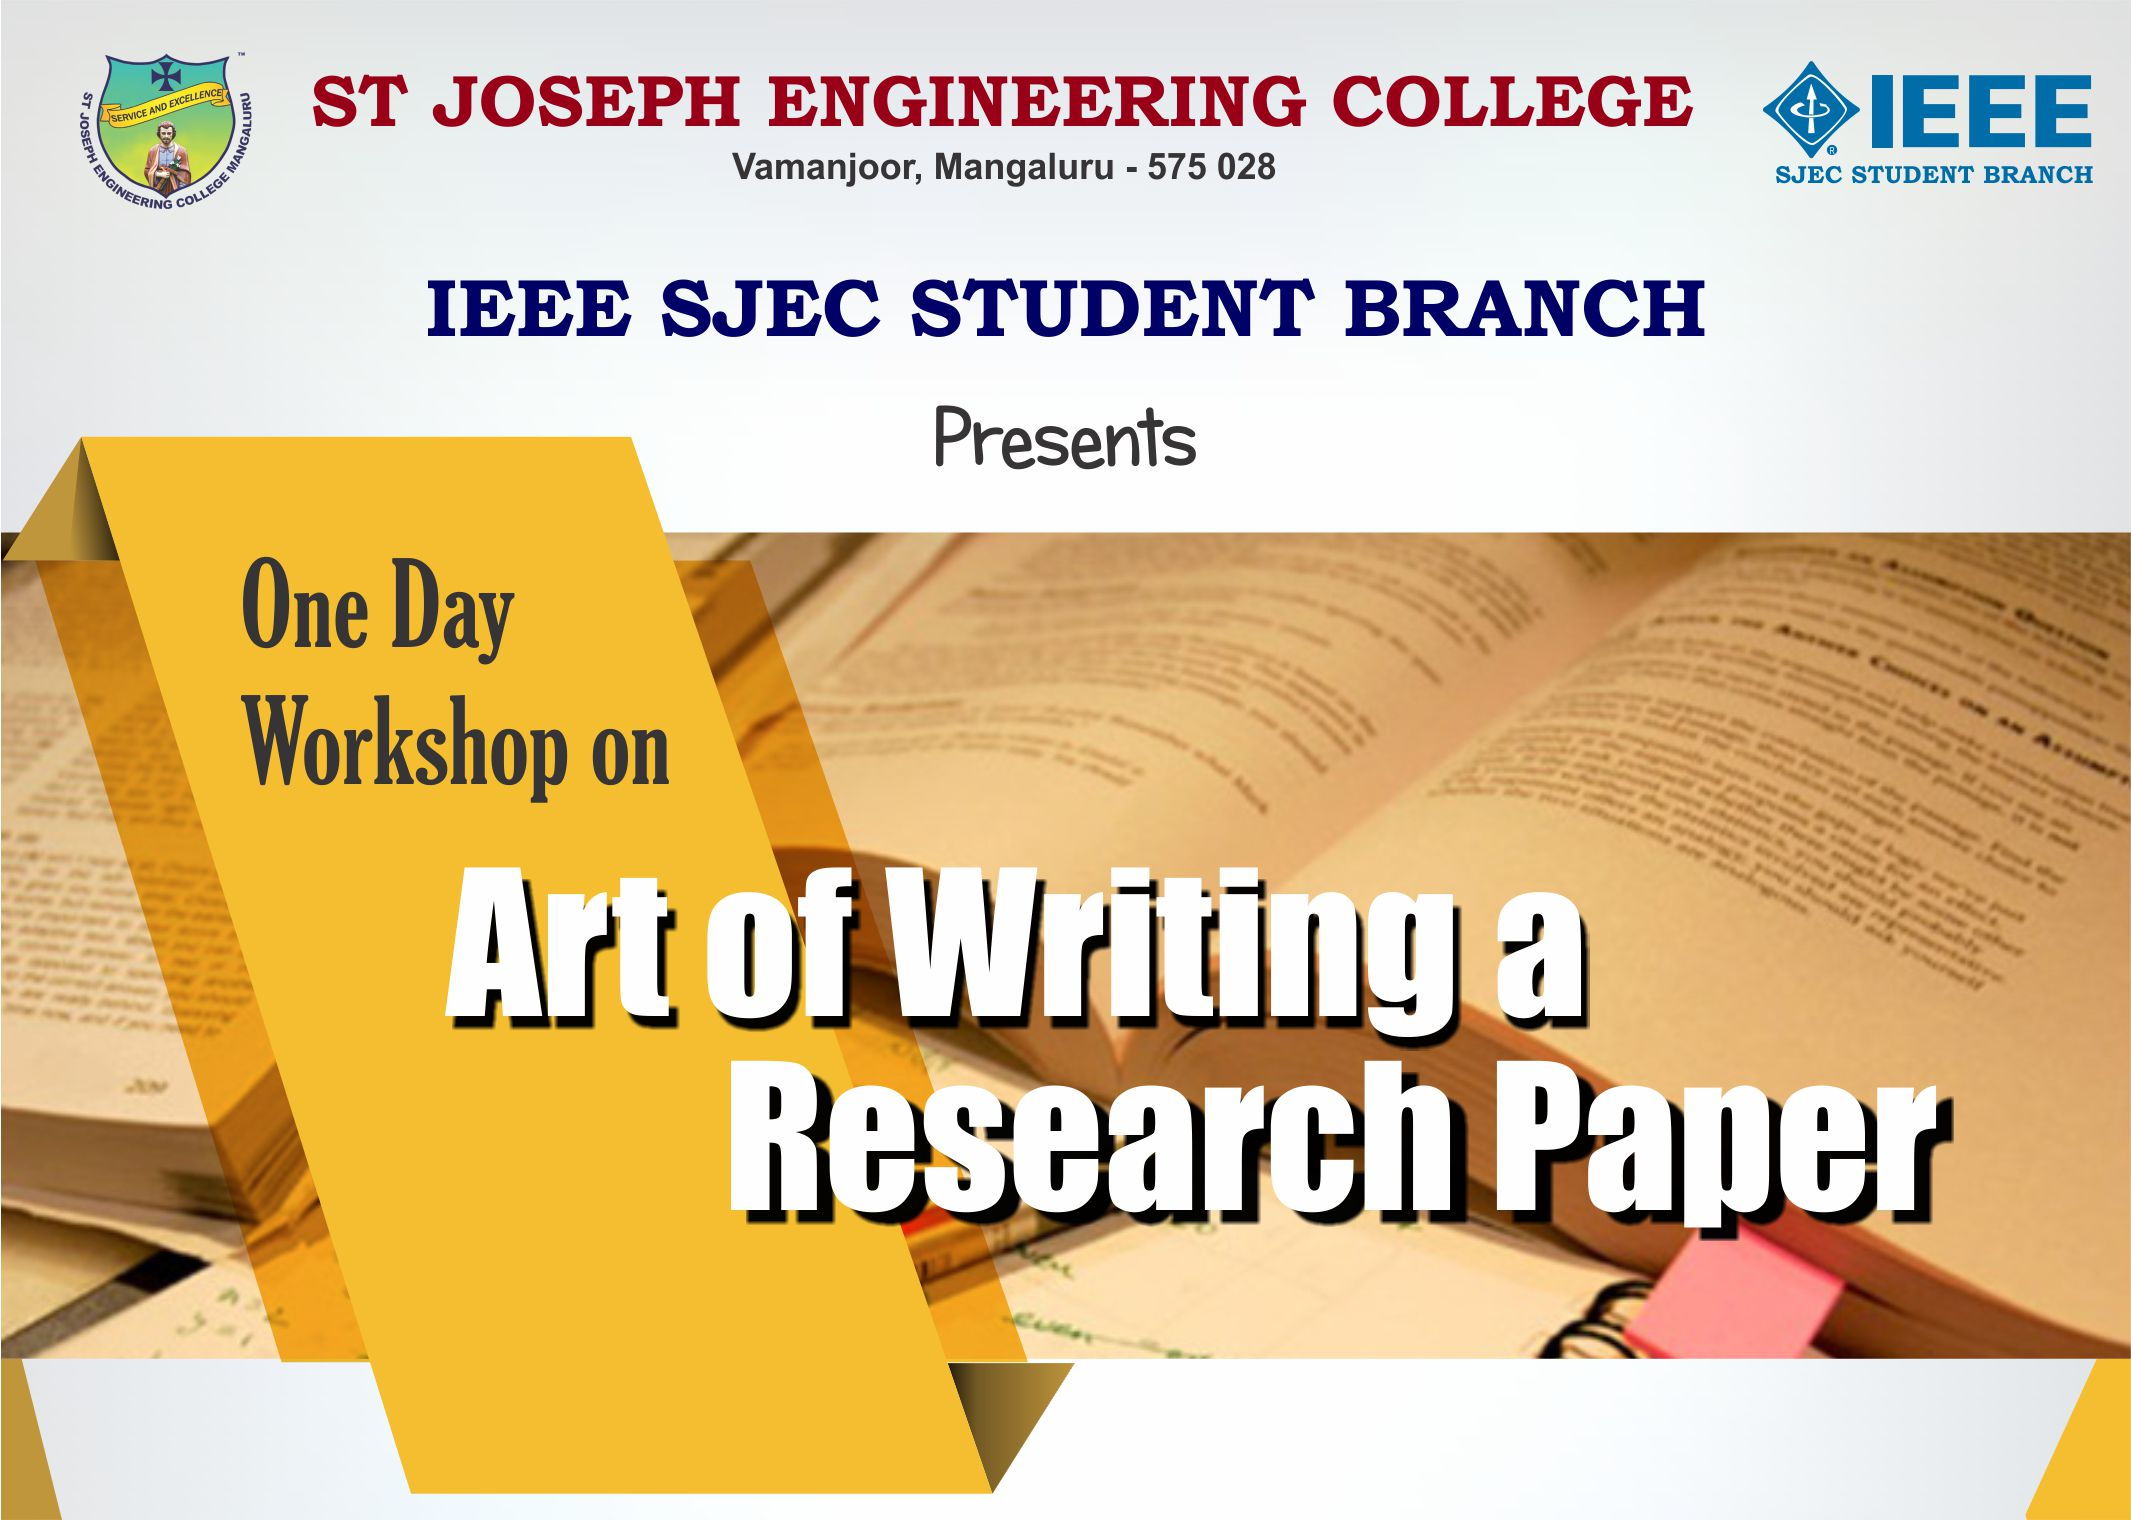 011 Workshop Banner Research Paper Striking Writing Papers A Complete Guide 16th Edition Pdf James D Lester Outline Full